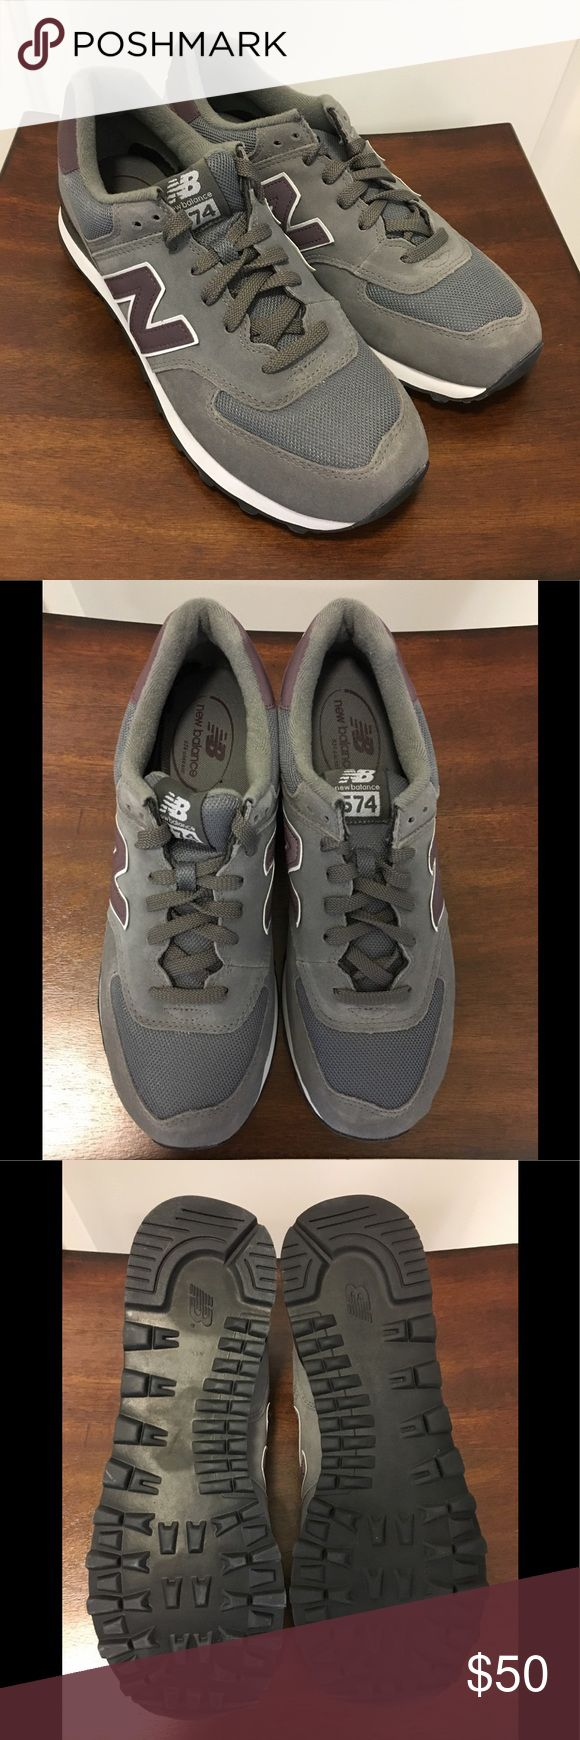 New Balance Sneakers - Men New Balance Sneakers - men's. BRAND NEW! Never tried on. Colors: gray & wine. Size: 10 New Balance Shoes Sneakers